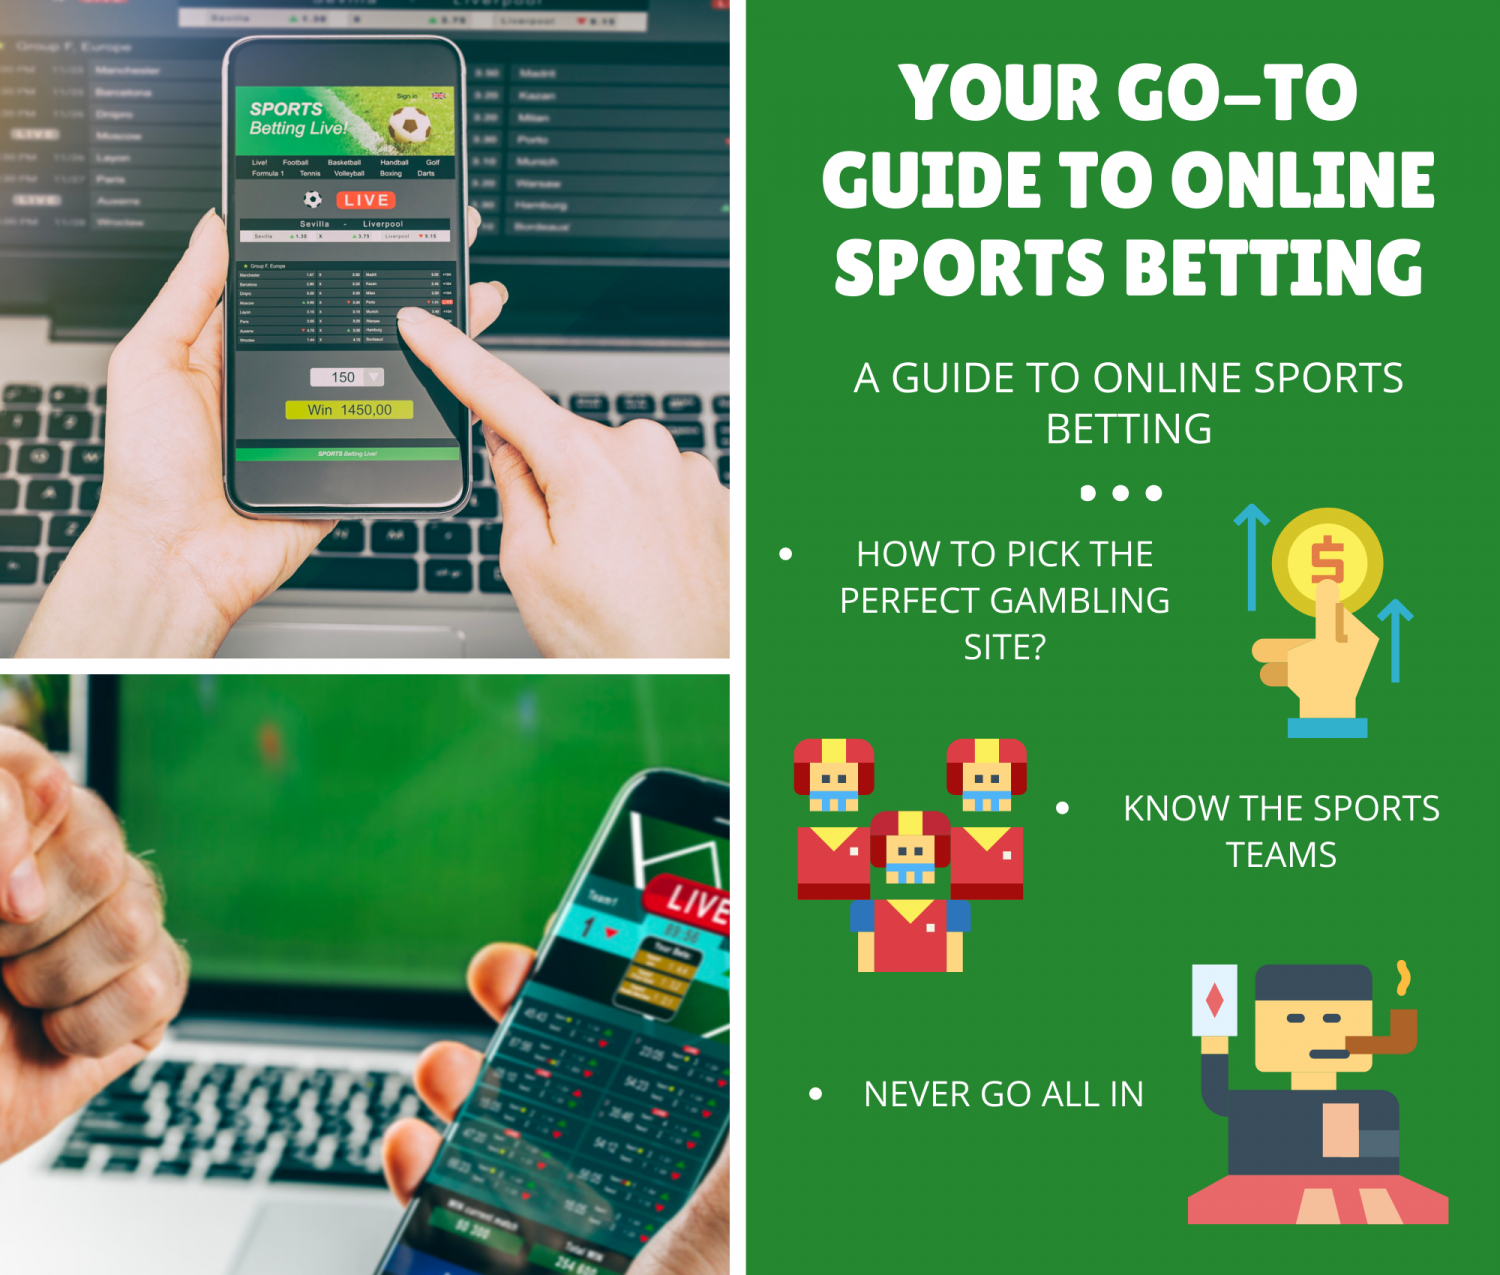 Your Go-To Guide To Online Sports Betting Infographic